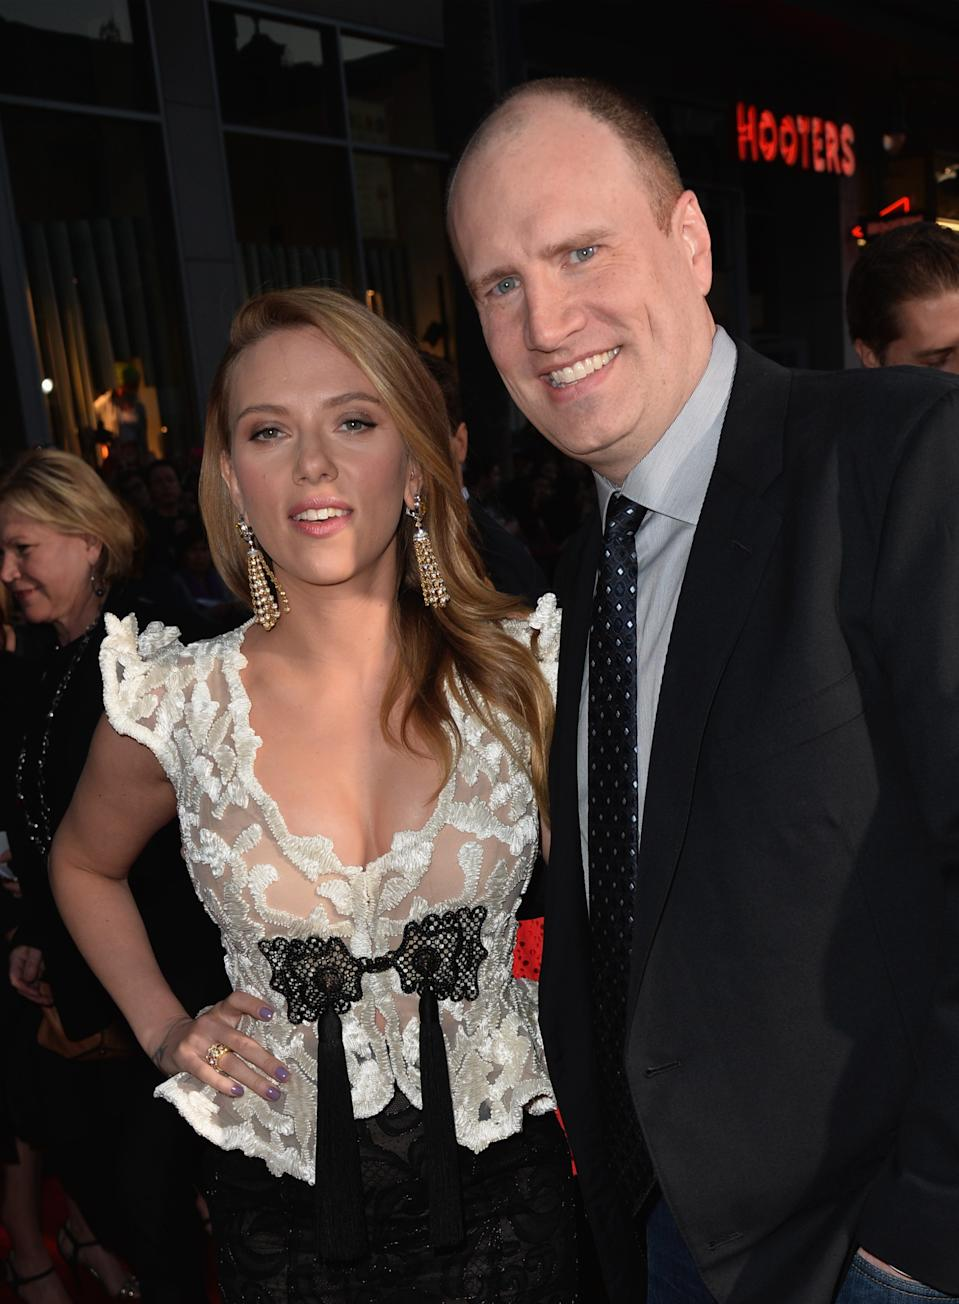 """HOLLYWOOD, CA - MARCH 13:  Actress Scarlett Johansson and  President of Production at Marvel Studios Kevin Feige attend the premiere of Marvel's """"Captain America: The Winter Soldier"""" at the El Capitan Theatre on March 13, 2014 in Hollywood, California.  (Photo by Kevin Winter/Getty Images)"""